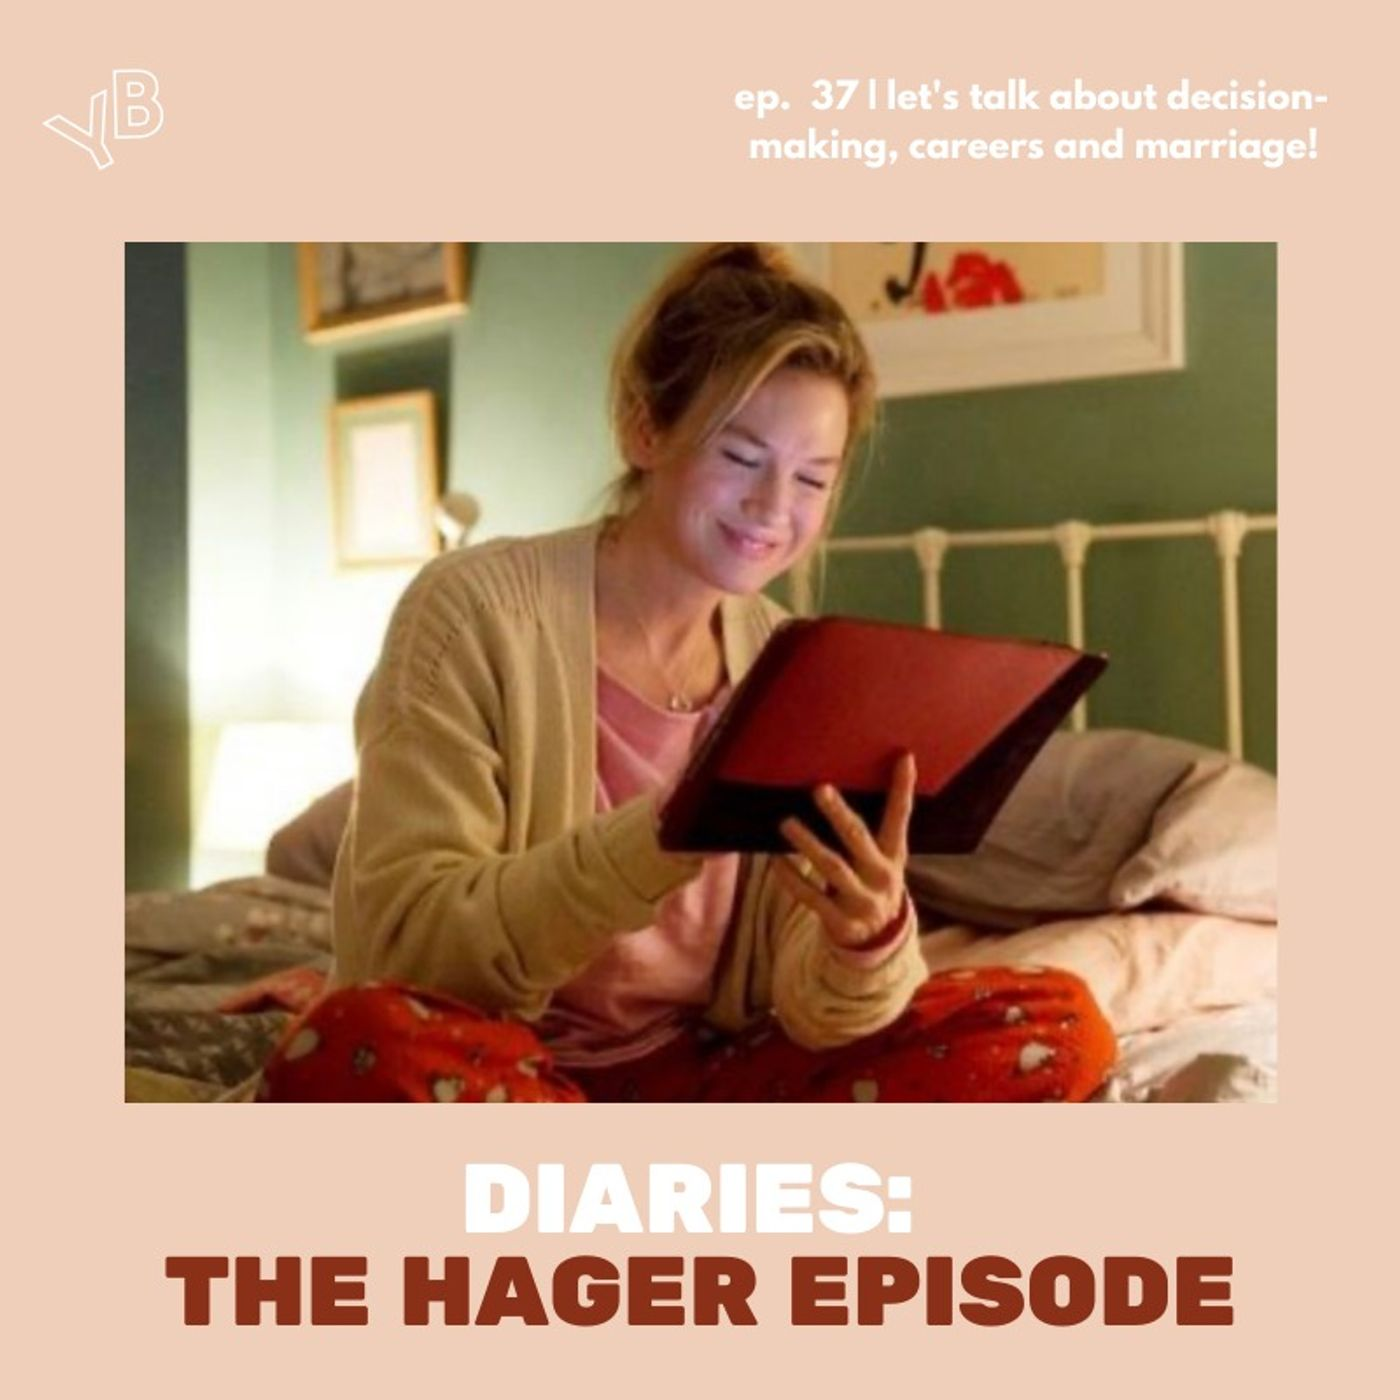 37   Hager's Diaries   Let's talk about decision-making, envy, careers and marriage!